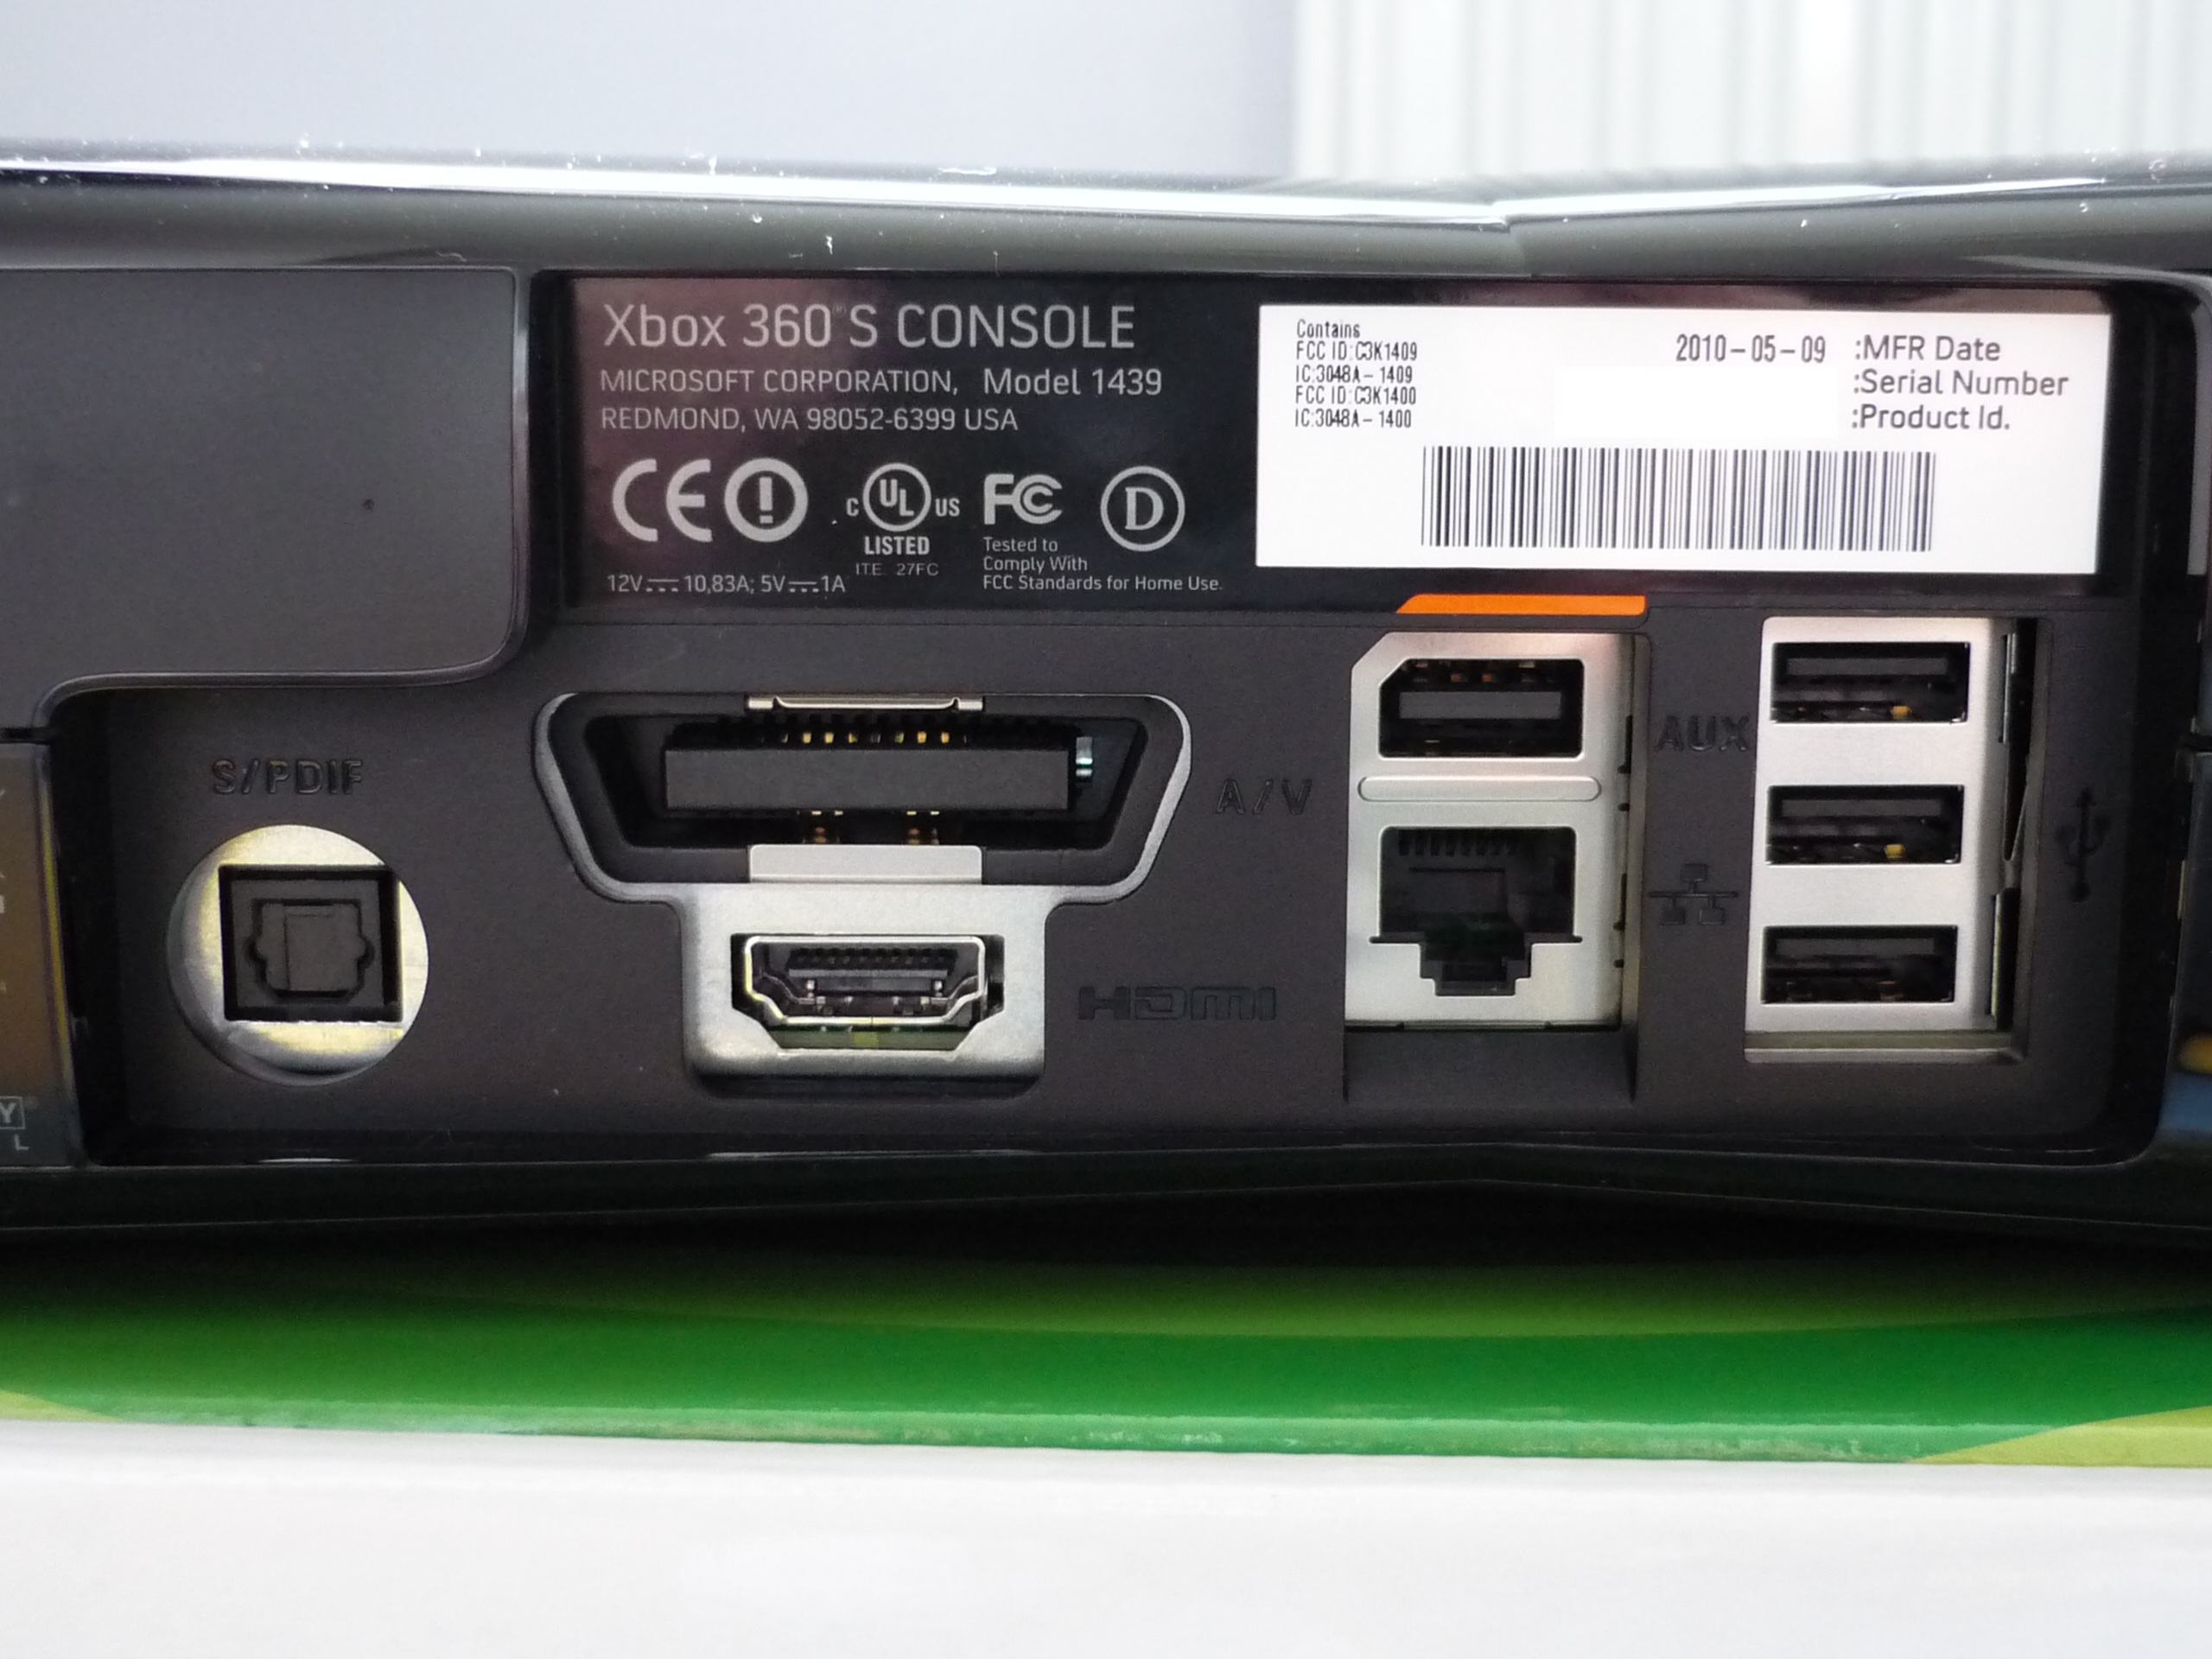 Introducing The Xbox 360 S In Pictures « Emo185's Blog